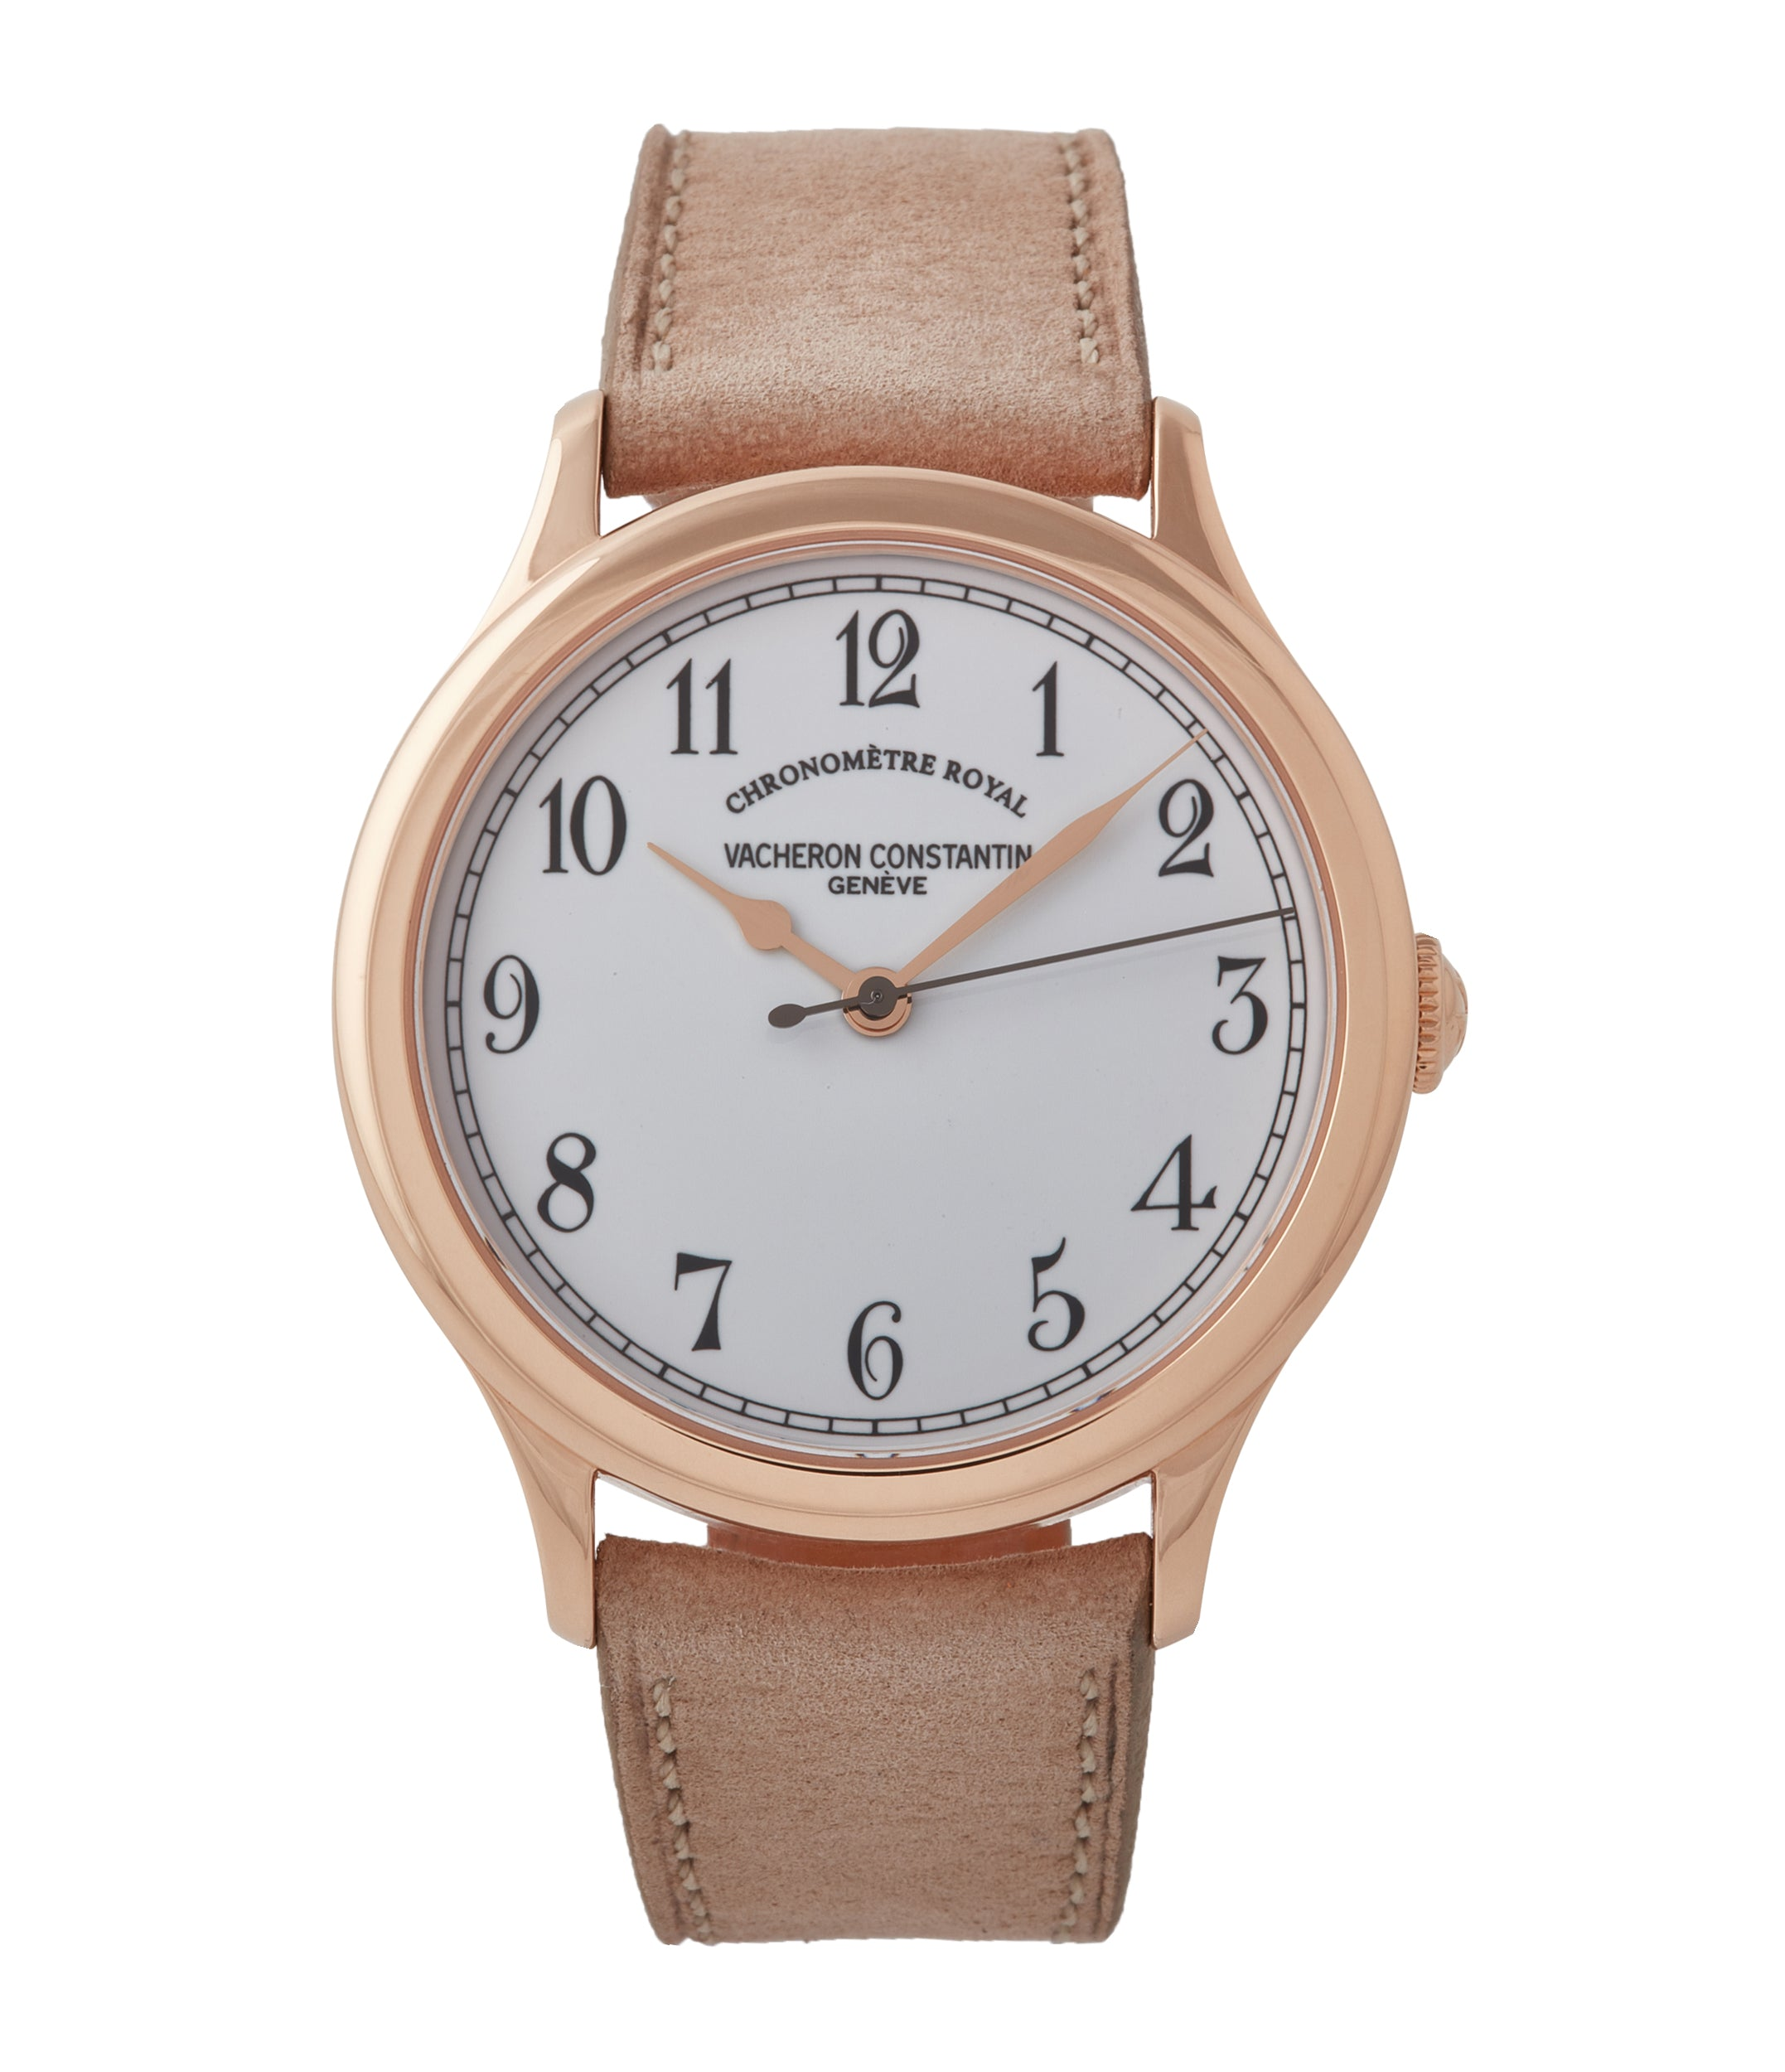 buy Vacheron Constantin Historiques Chronometre Royal 1907 86122/000R-9362 rose gold time-only dress watch for sale online at A Collected Man London